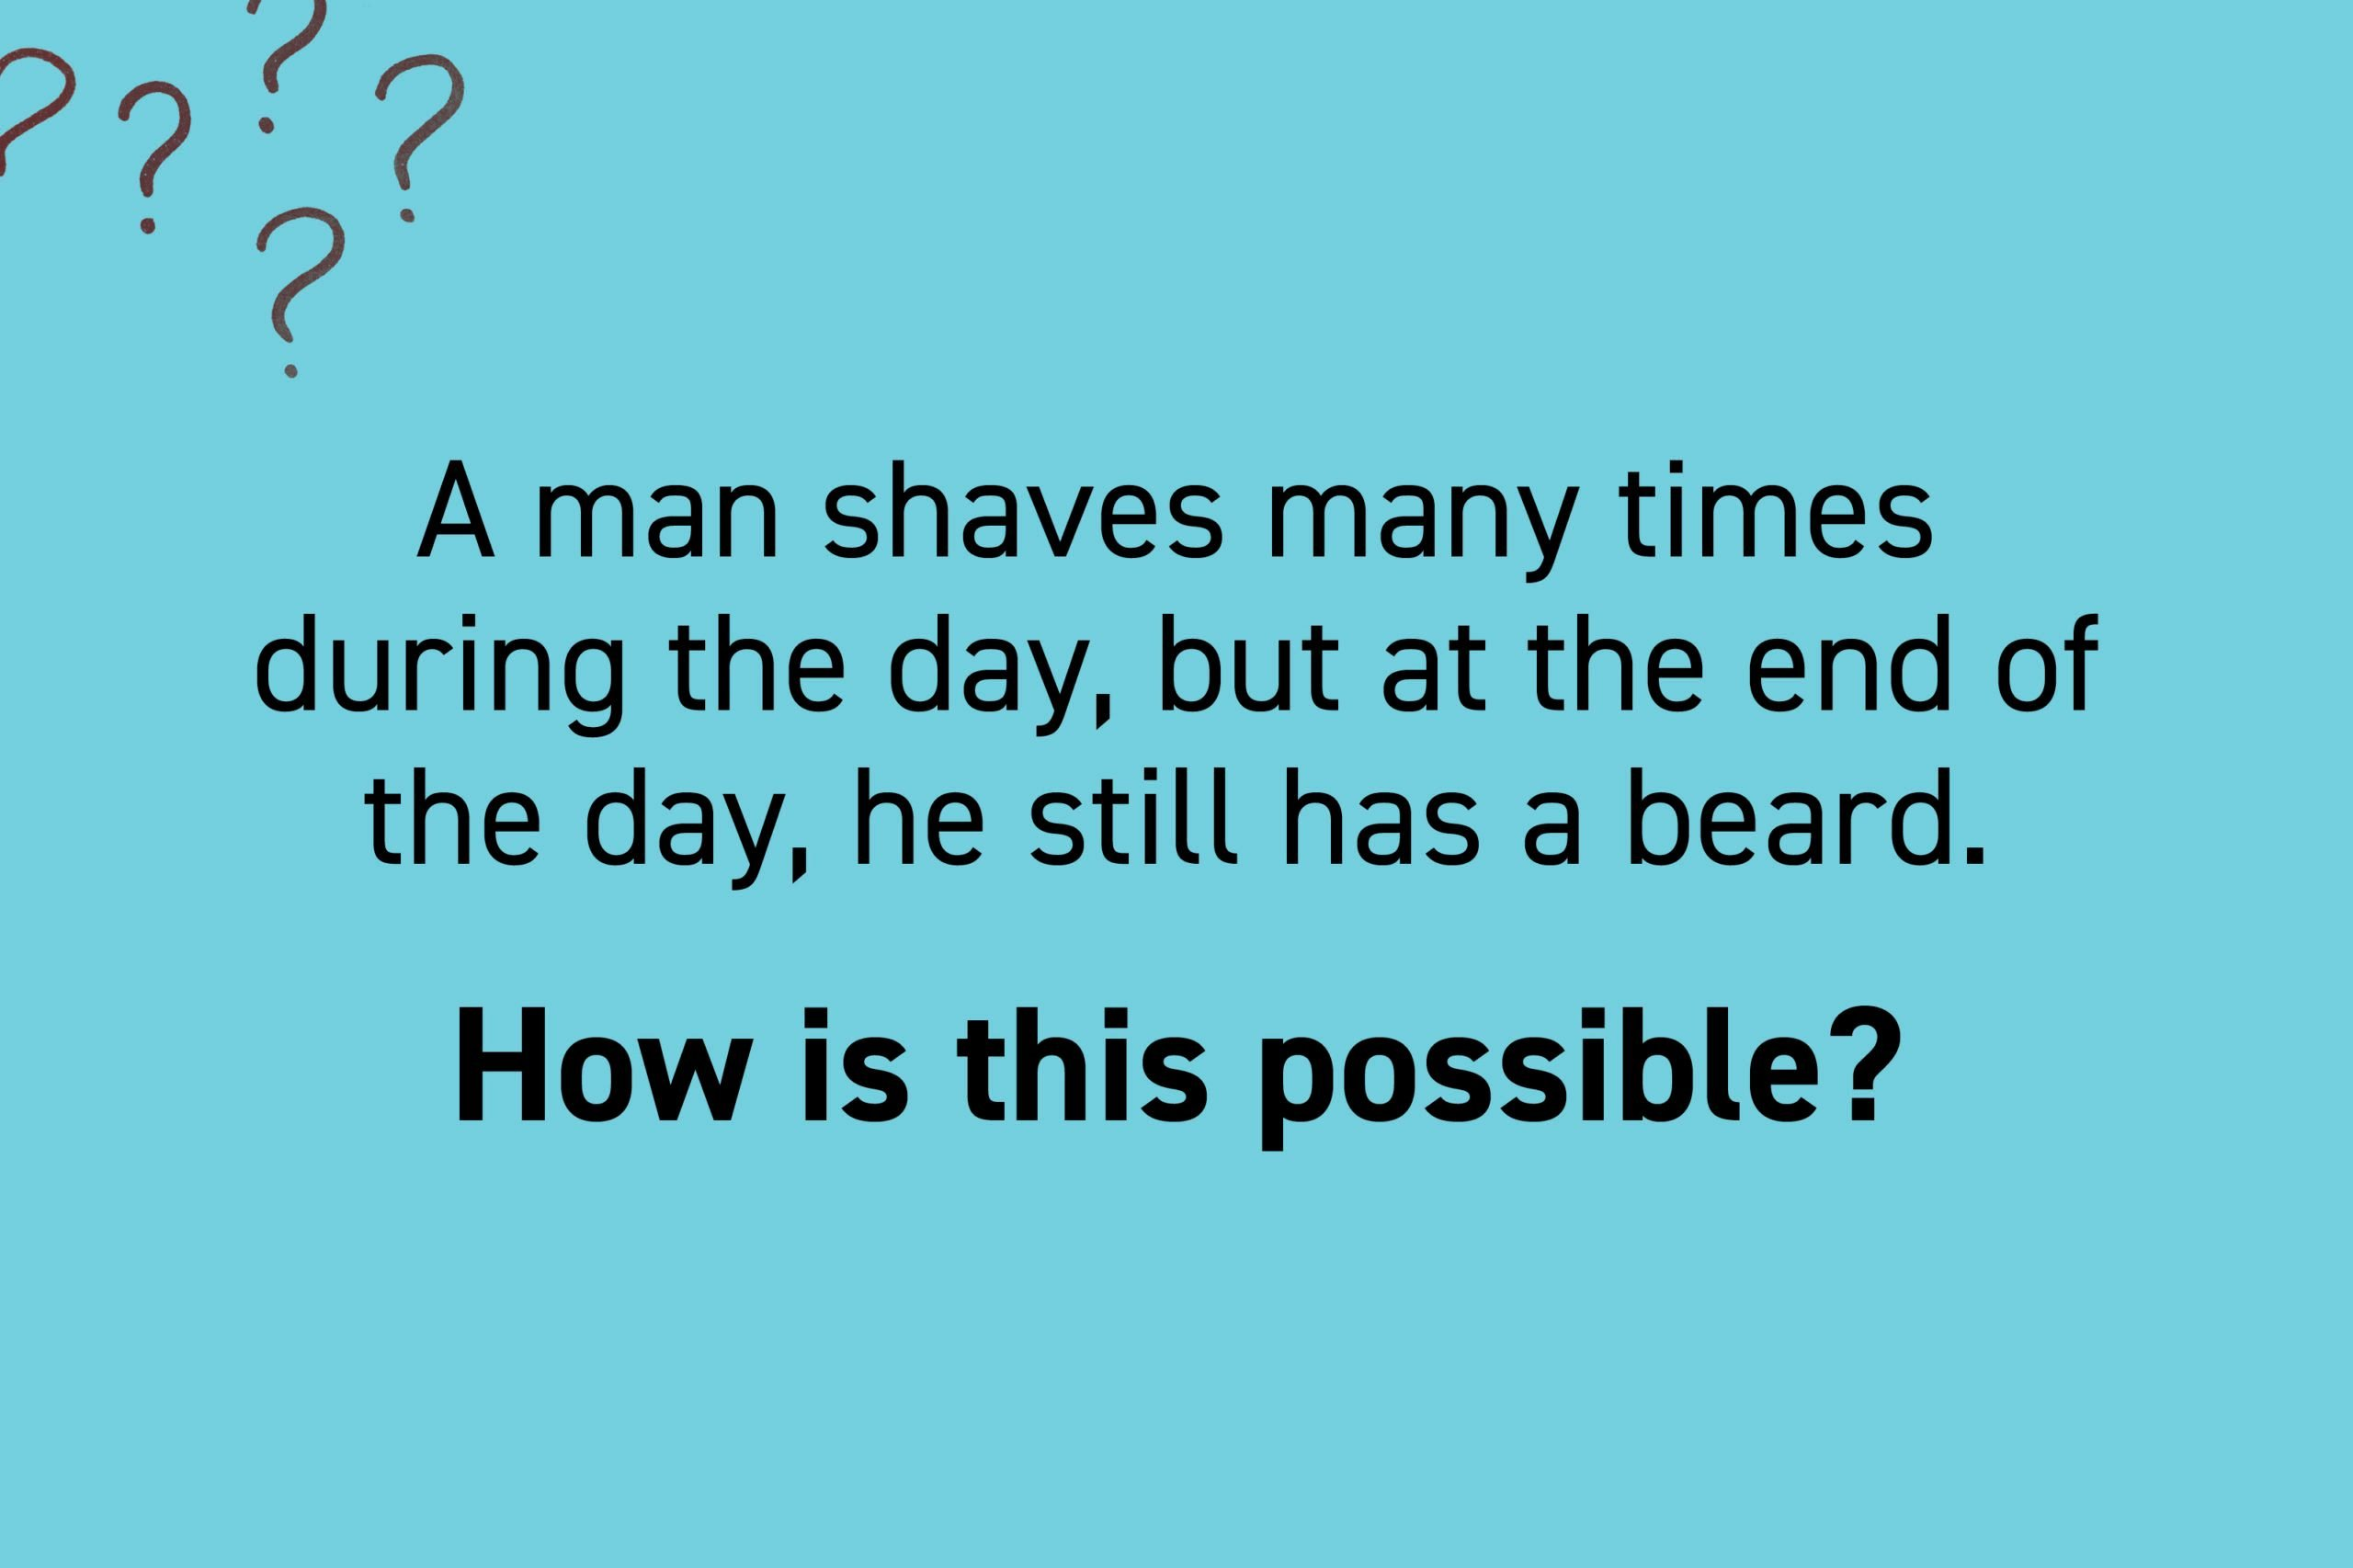 A man shaves many times during the day, but at the end of the day, he still has a beard. How is this possible?